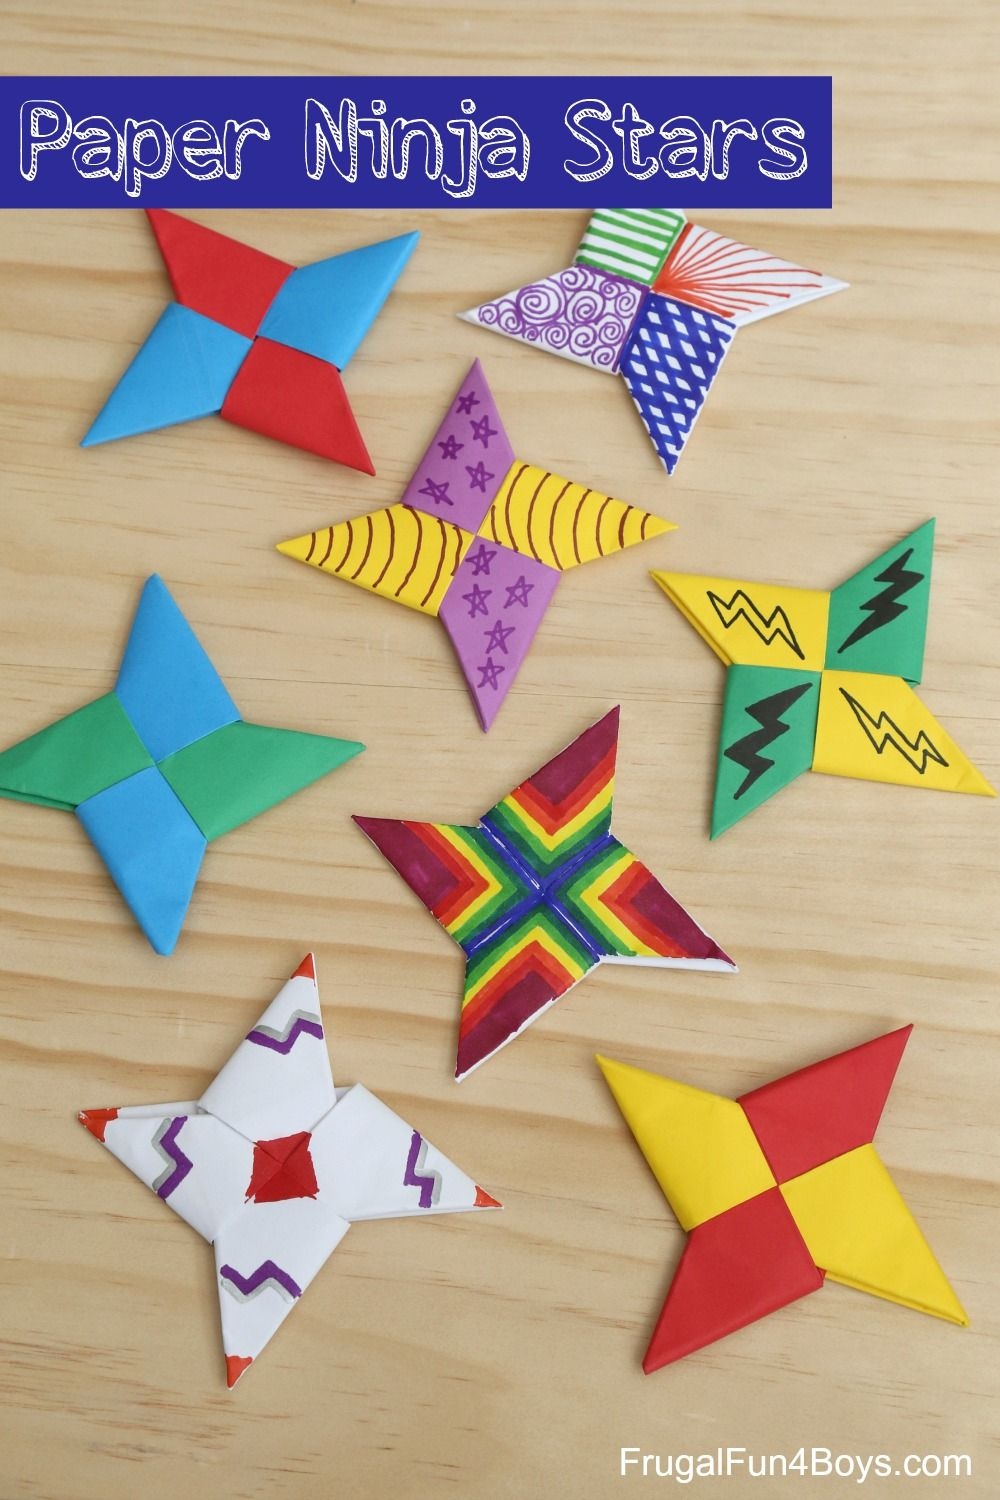 Schemes and description of the creation of paper crafts to the origami technique for children aged 6 years